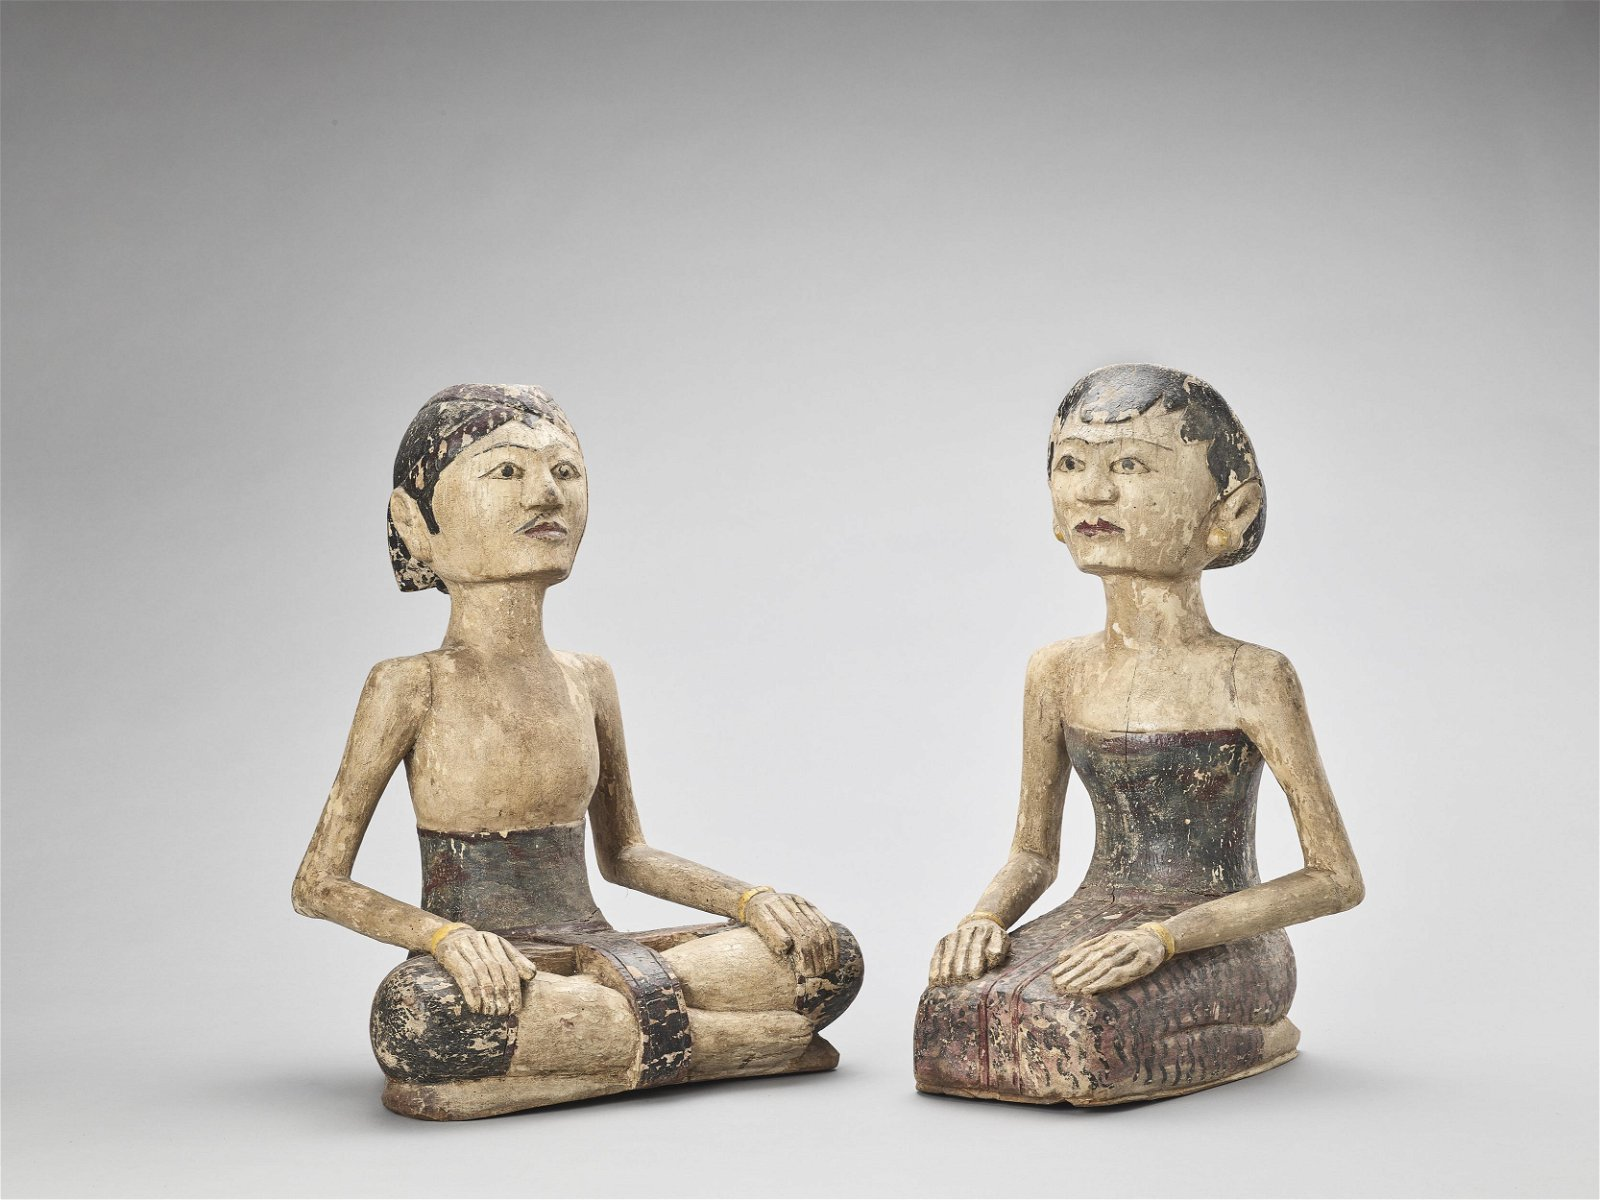 TWO JAVANESE CARVED AND LACQUERED WOOD WORSHIPPERS, LAT